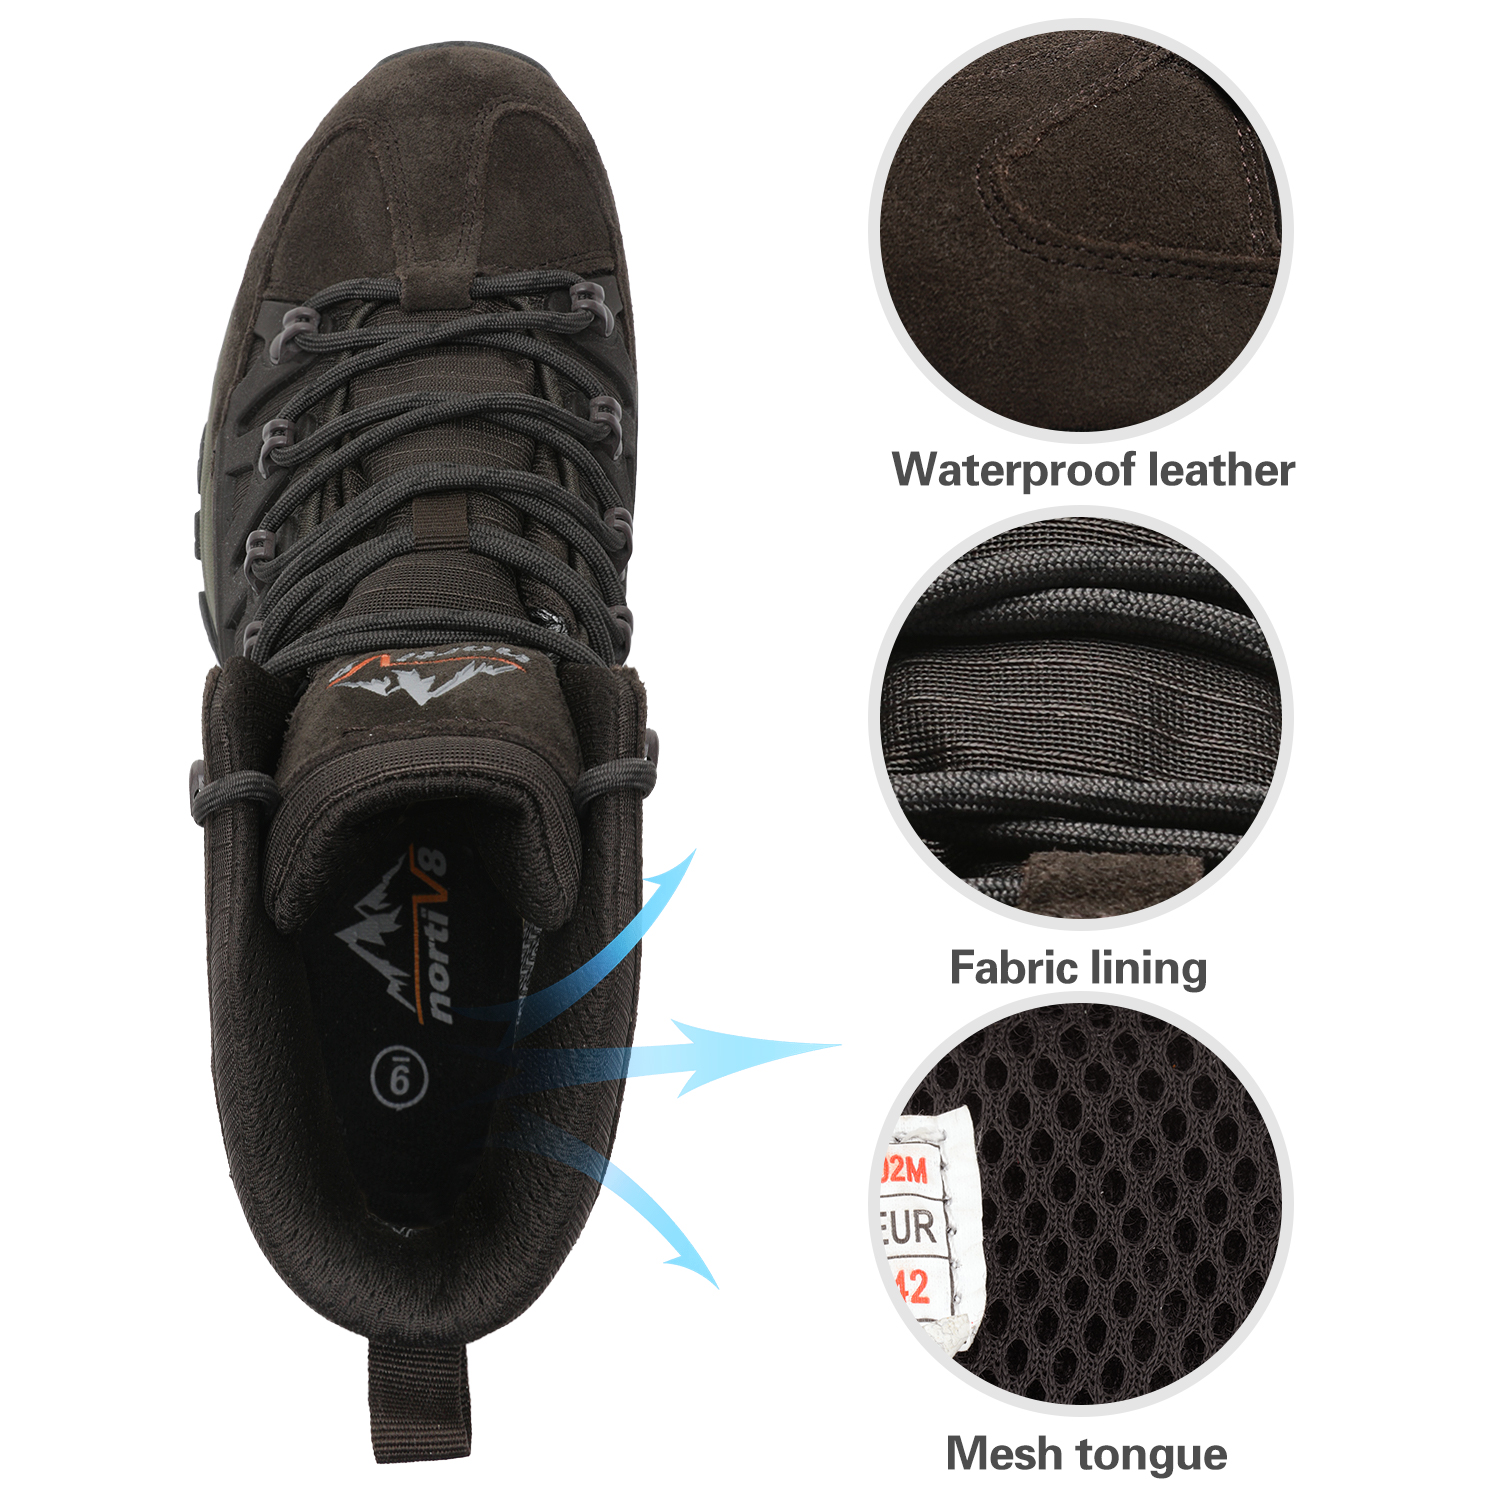 NORTIV-8-Men-039-s-Ankle-Waterproof-Hiking-Boots-Lightweight-Backpacking-Work-Shoes thumbnail 36